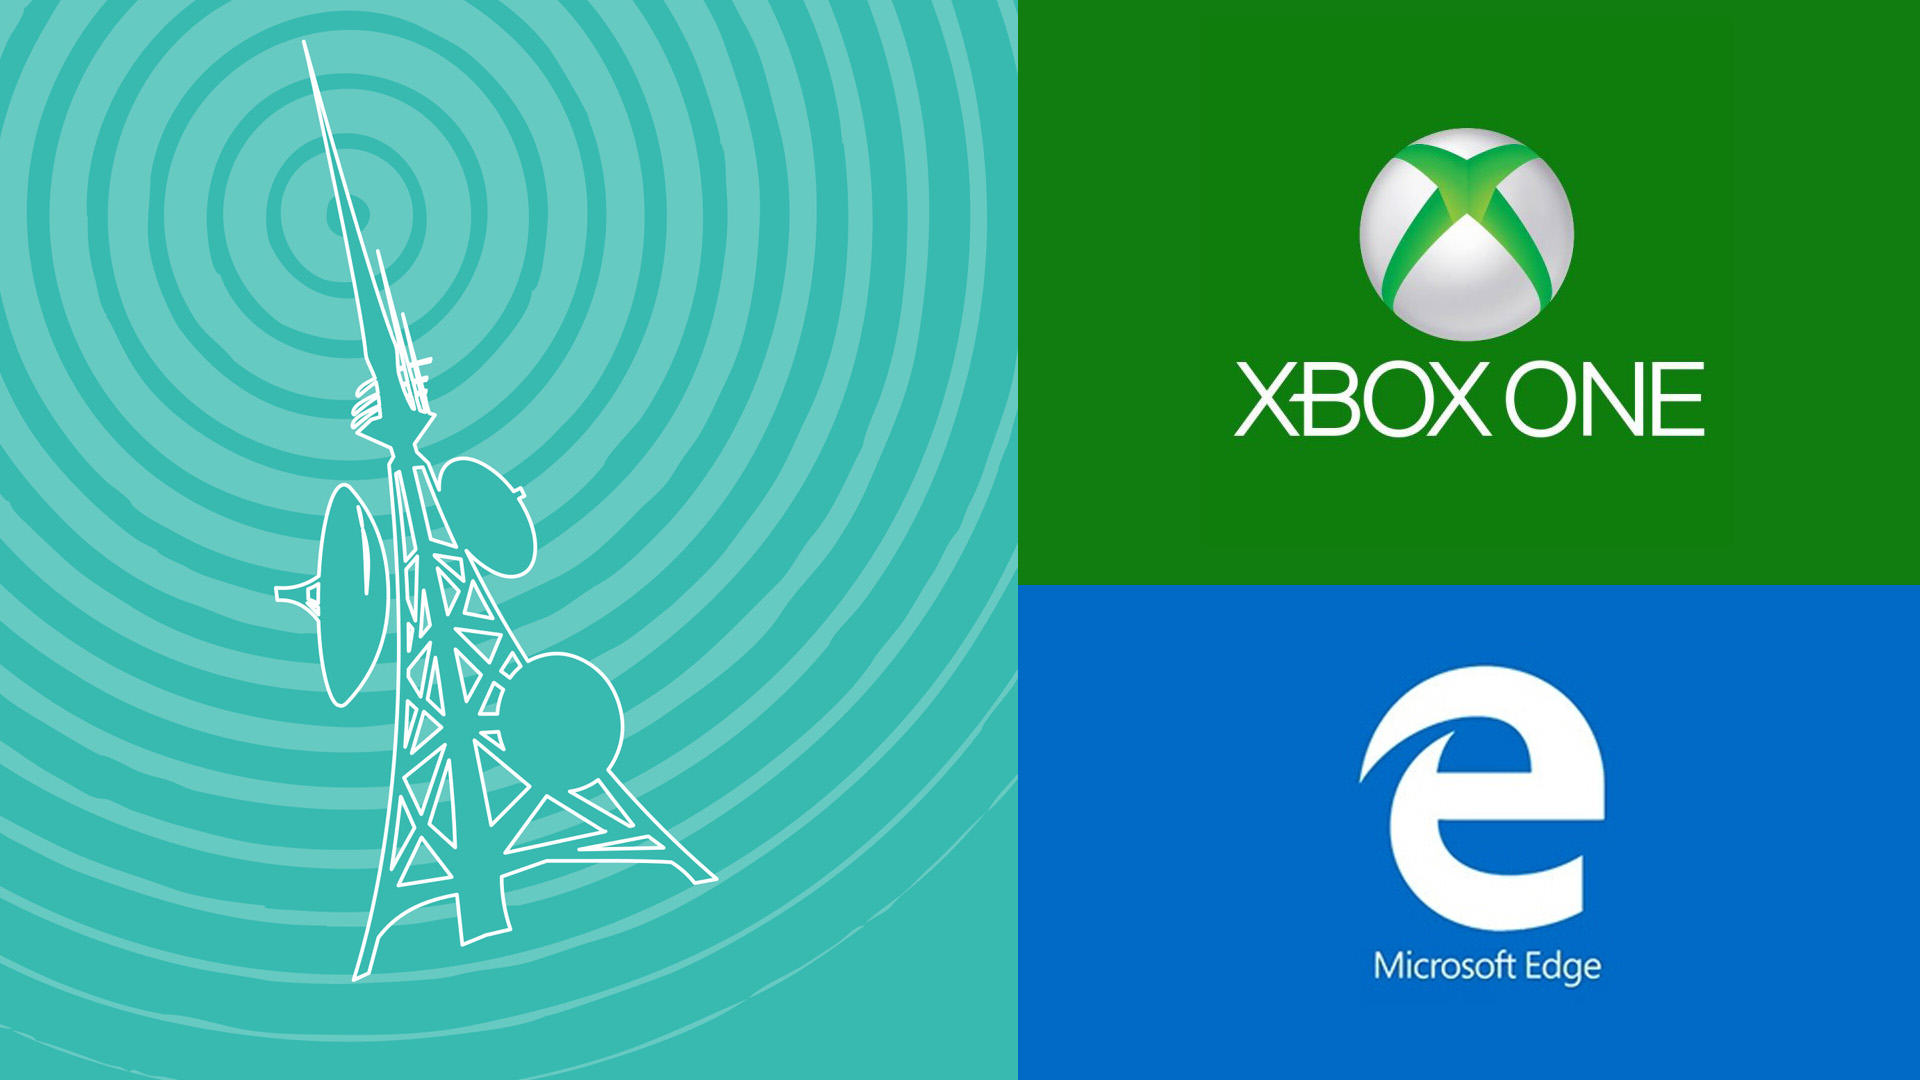 Broadcastingcomics en Xbox One!